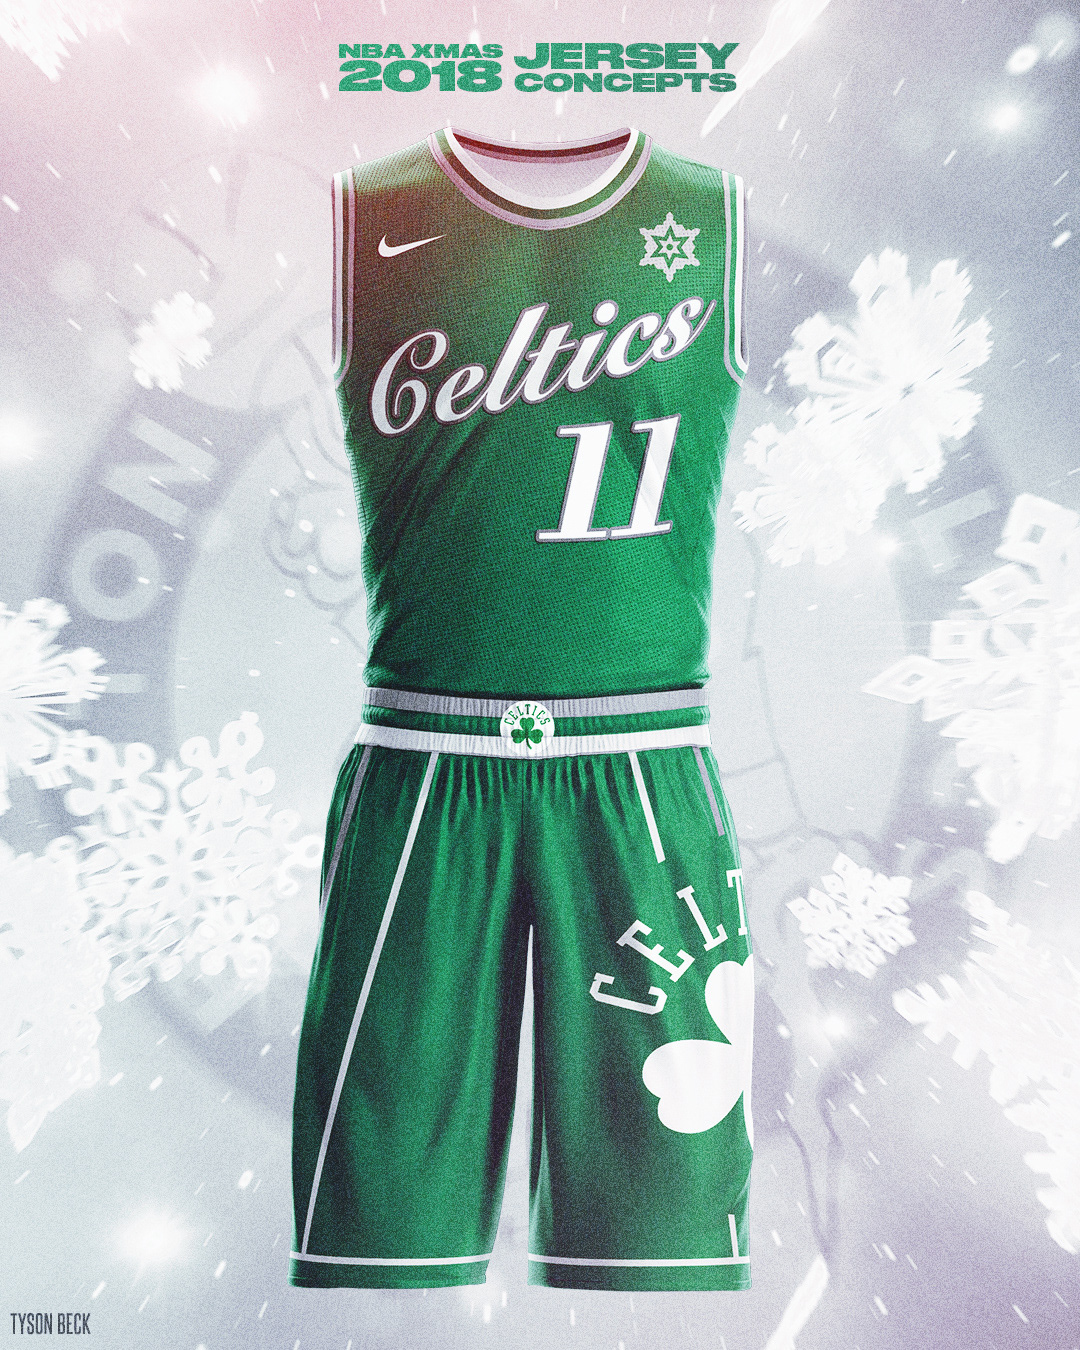 newest 9b1ad db600 NBA x NIKE 2018 Christmas Day - Jersey Concepts on Behance